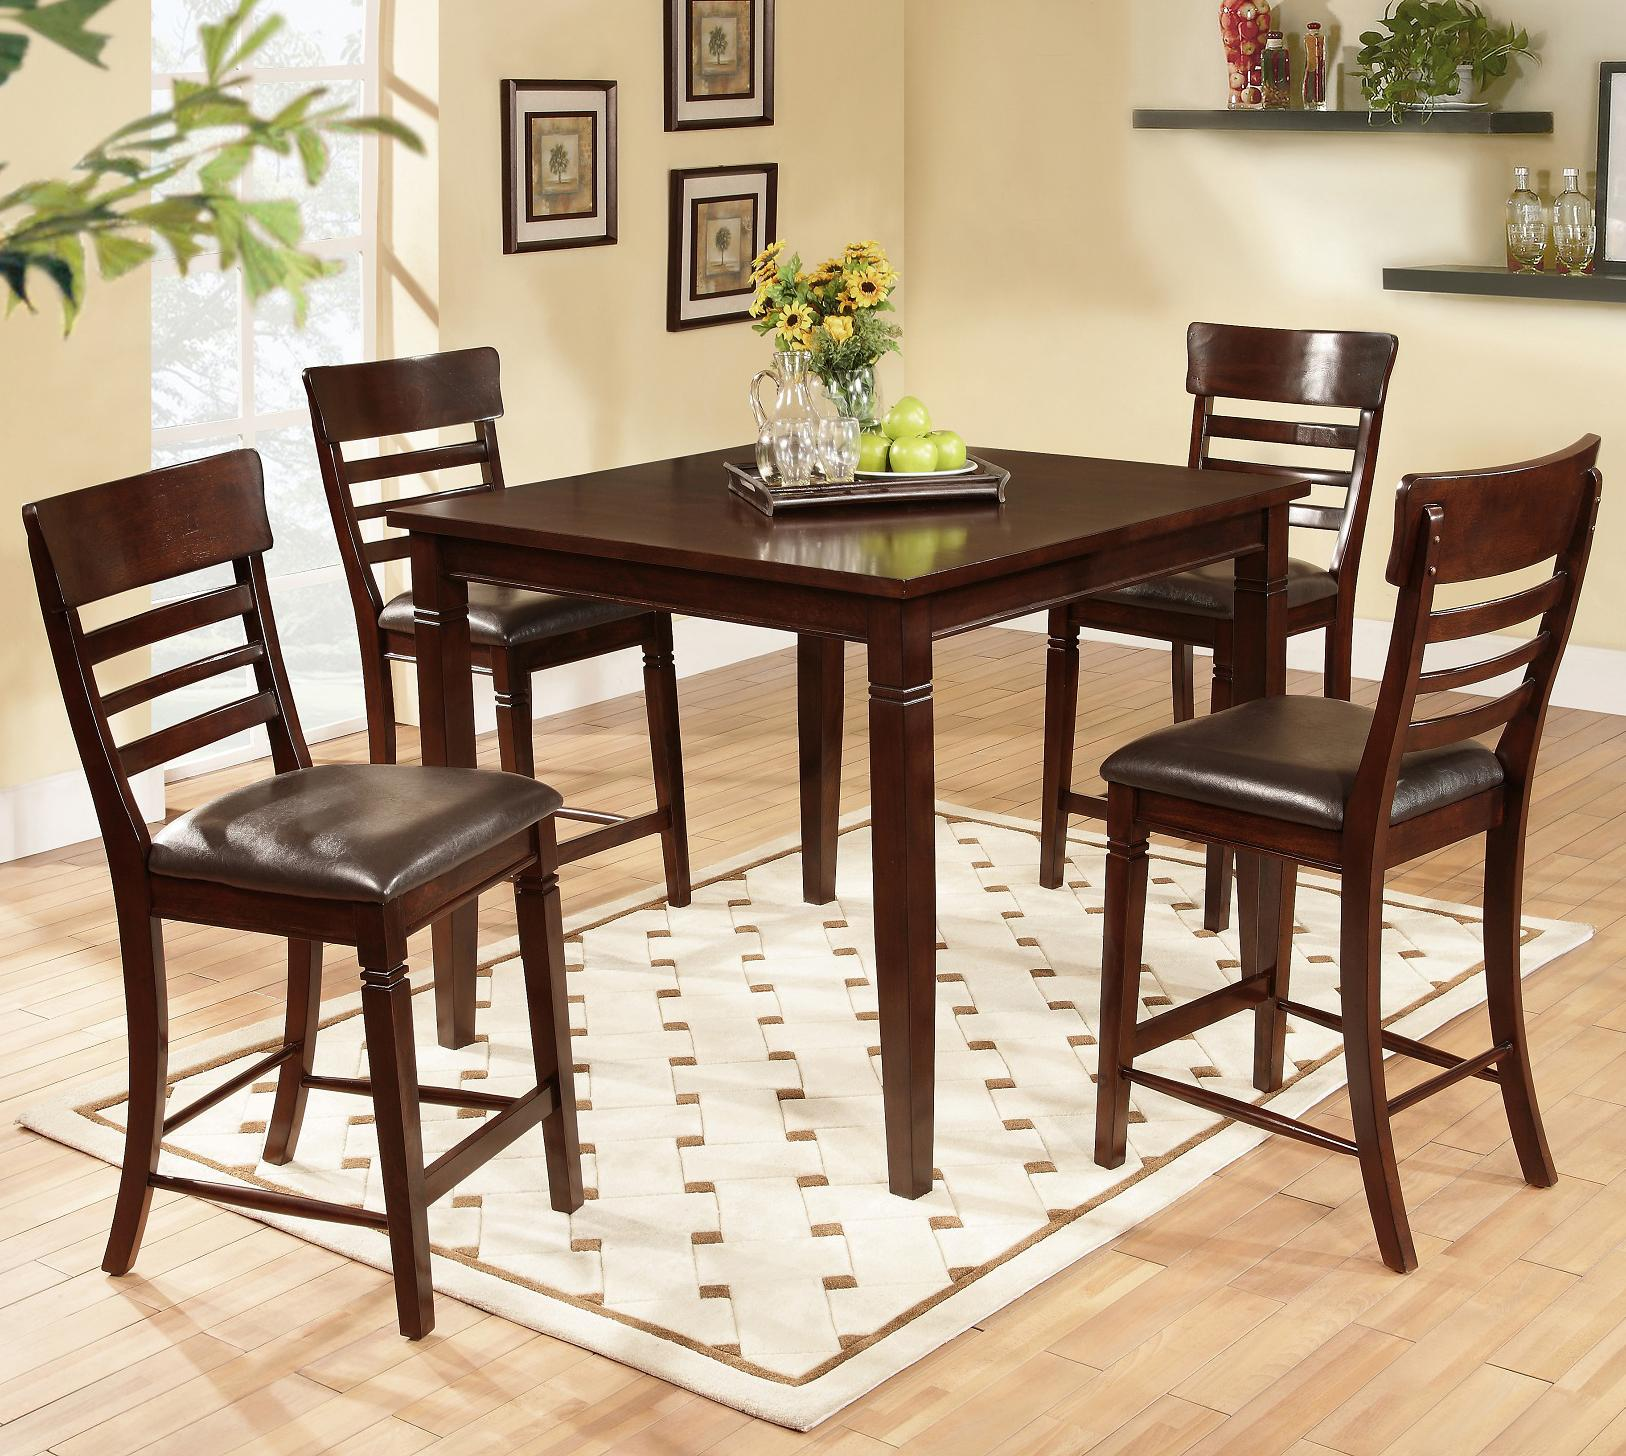 Lifestyle DC192 5 Piece Pub Table Set